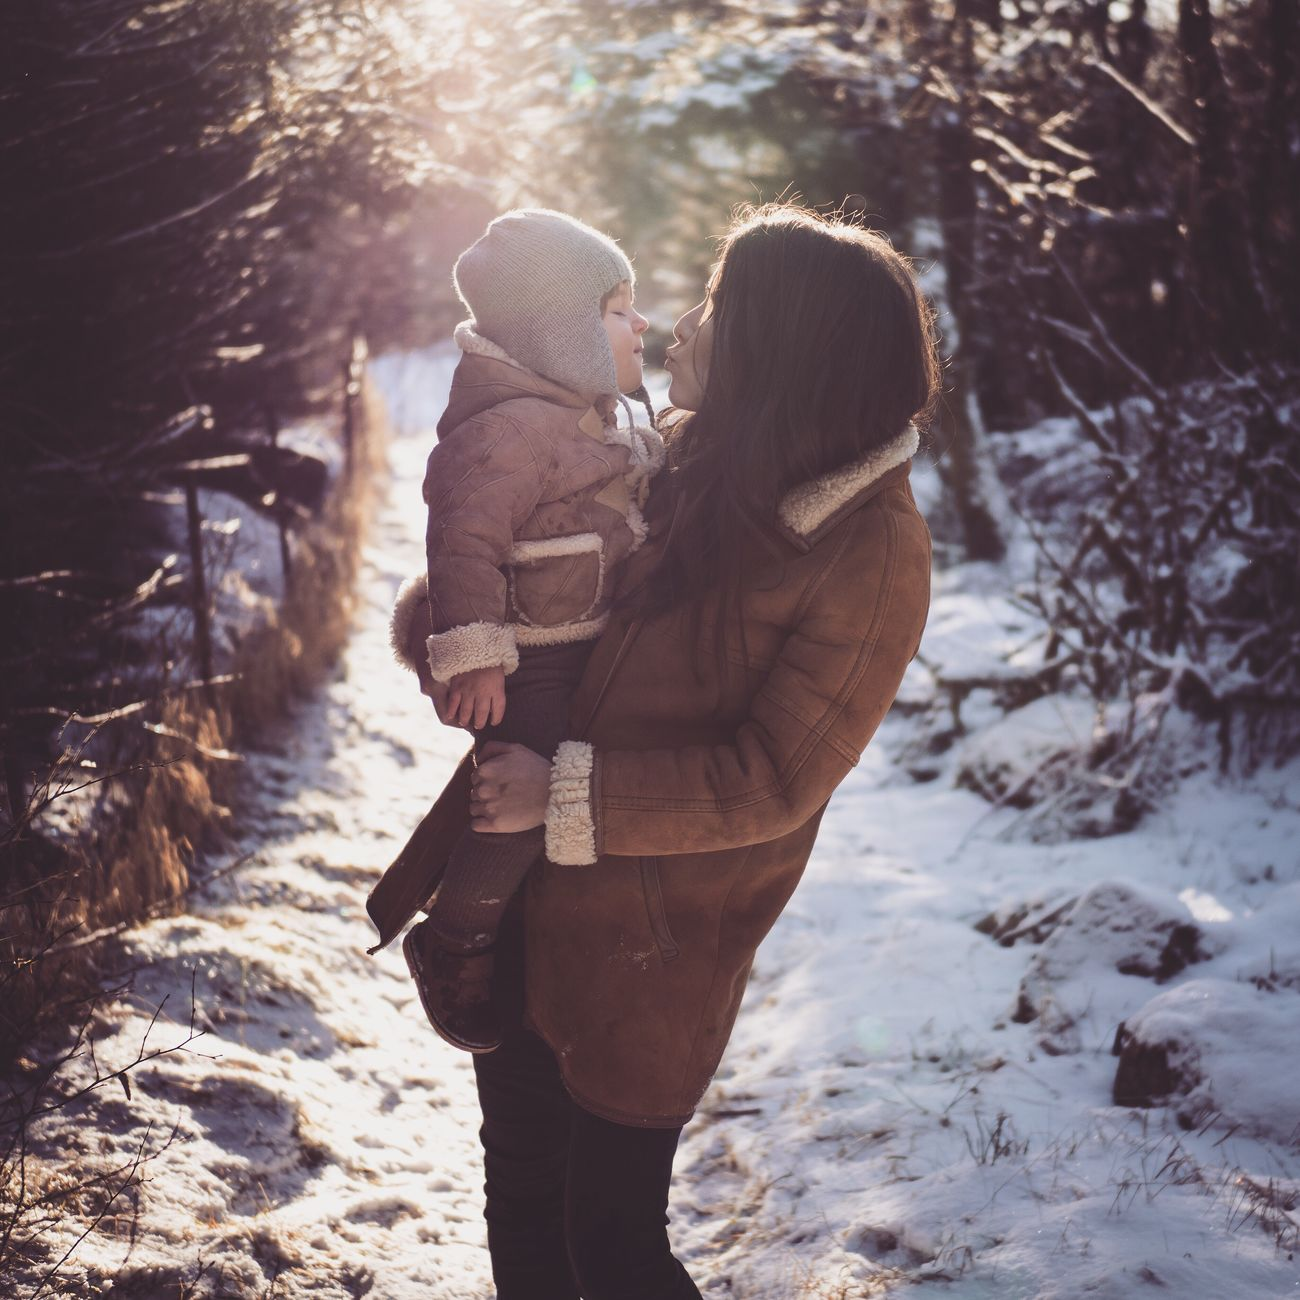 Winter kiss Winter Cold Temperature Warm Clothing Snow Love Nature Happiness Outdoors Togetherness Kids Children Photography Olympus Motherhood Omd Mft Toddler  Sunbeam Child Family Children Love Enjoying Life Sunshine